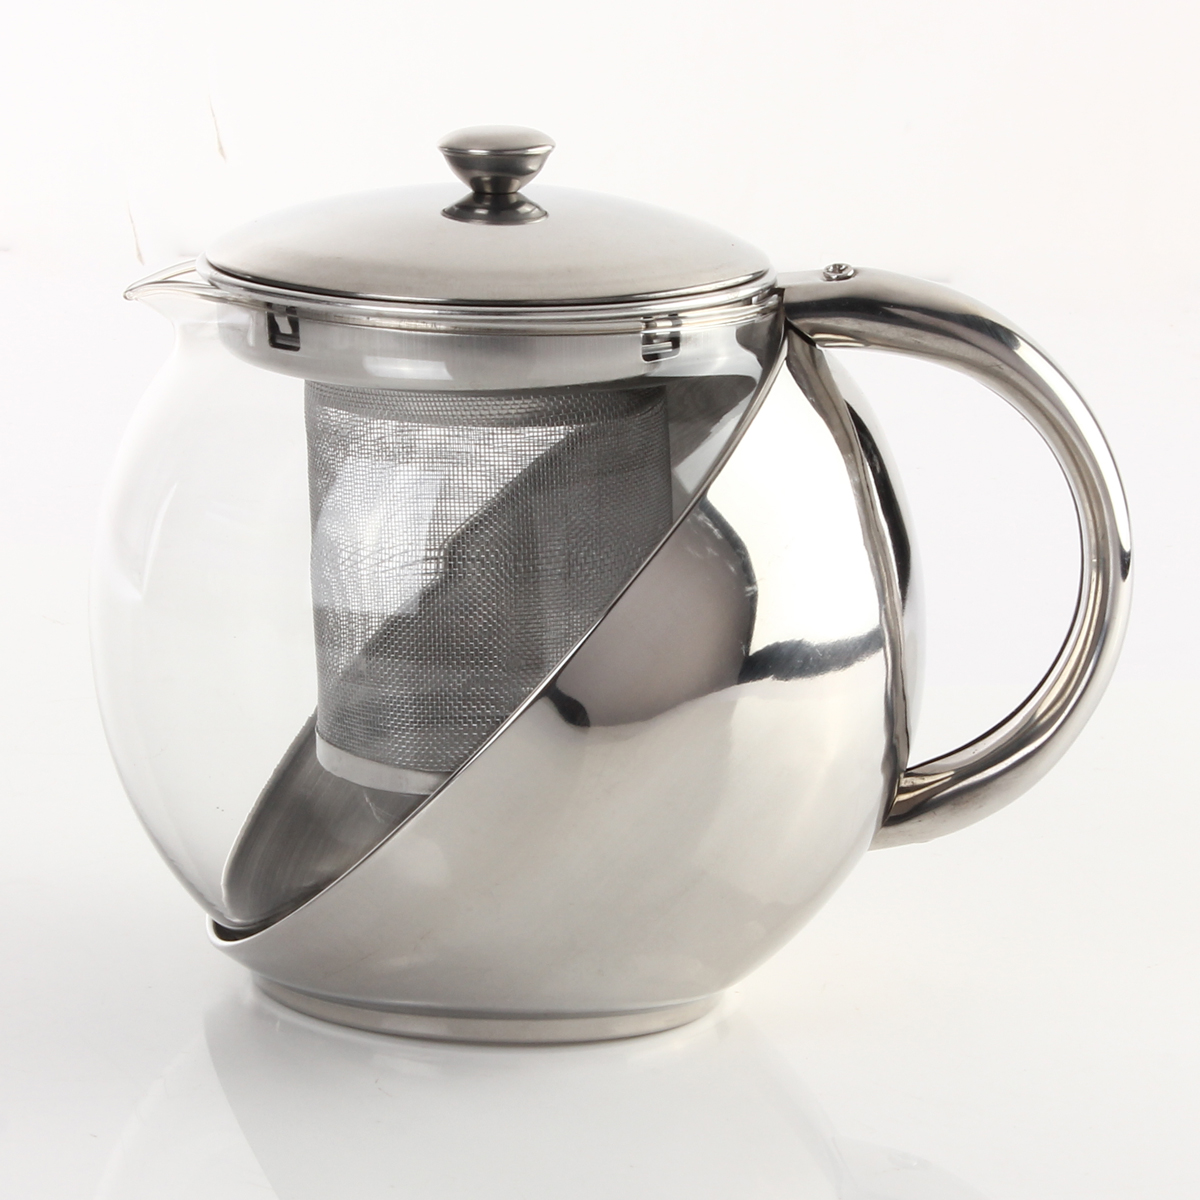 Tea Kettle With Strainer 900ml Stainless Steel Glass Teapot With Tea Leaf Strainer